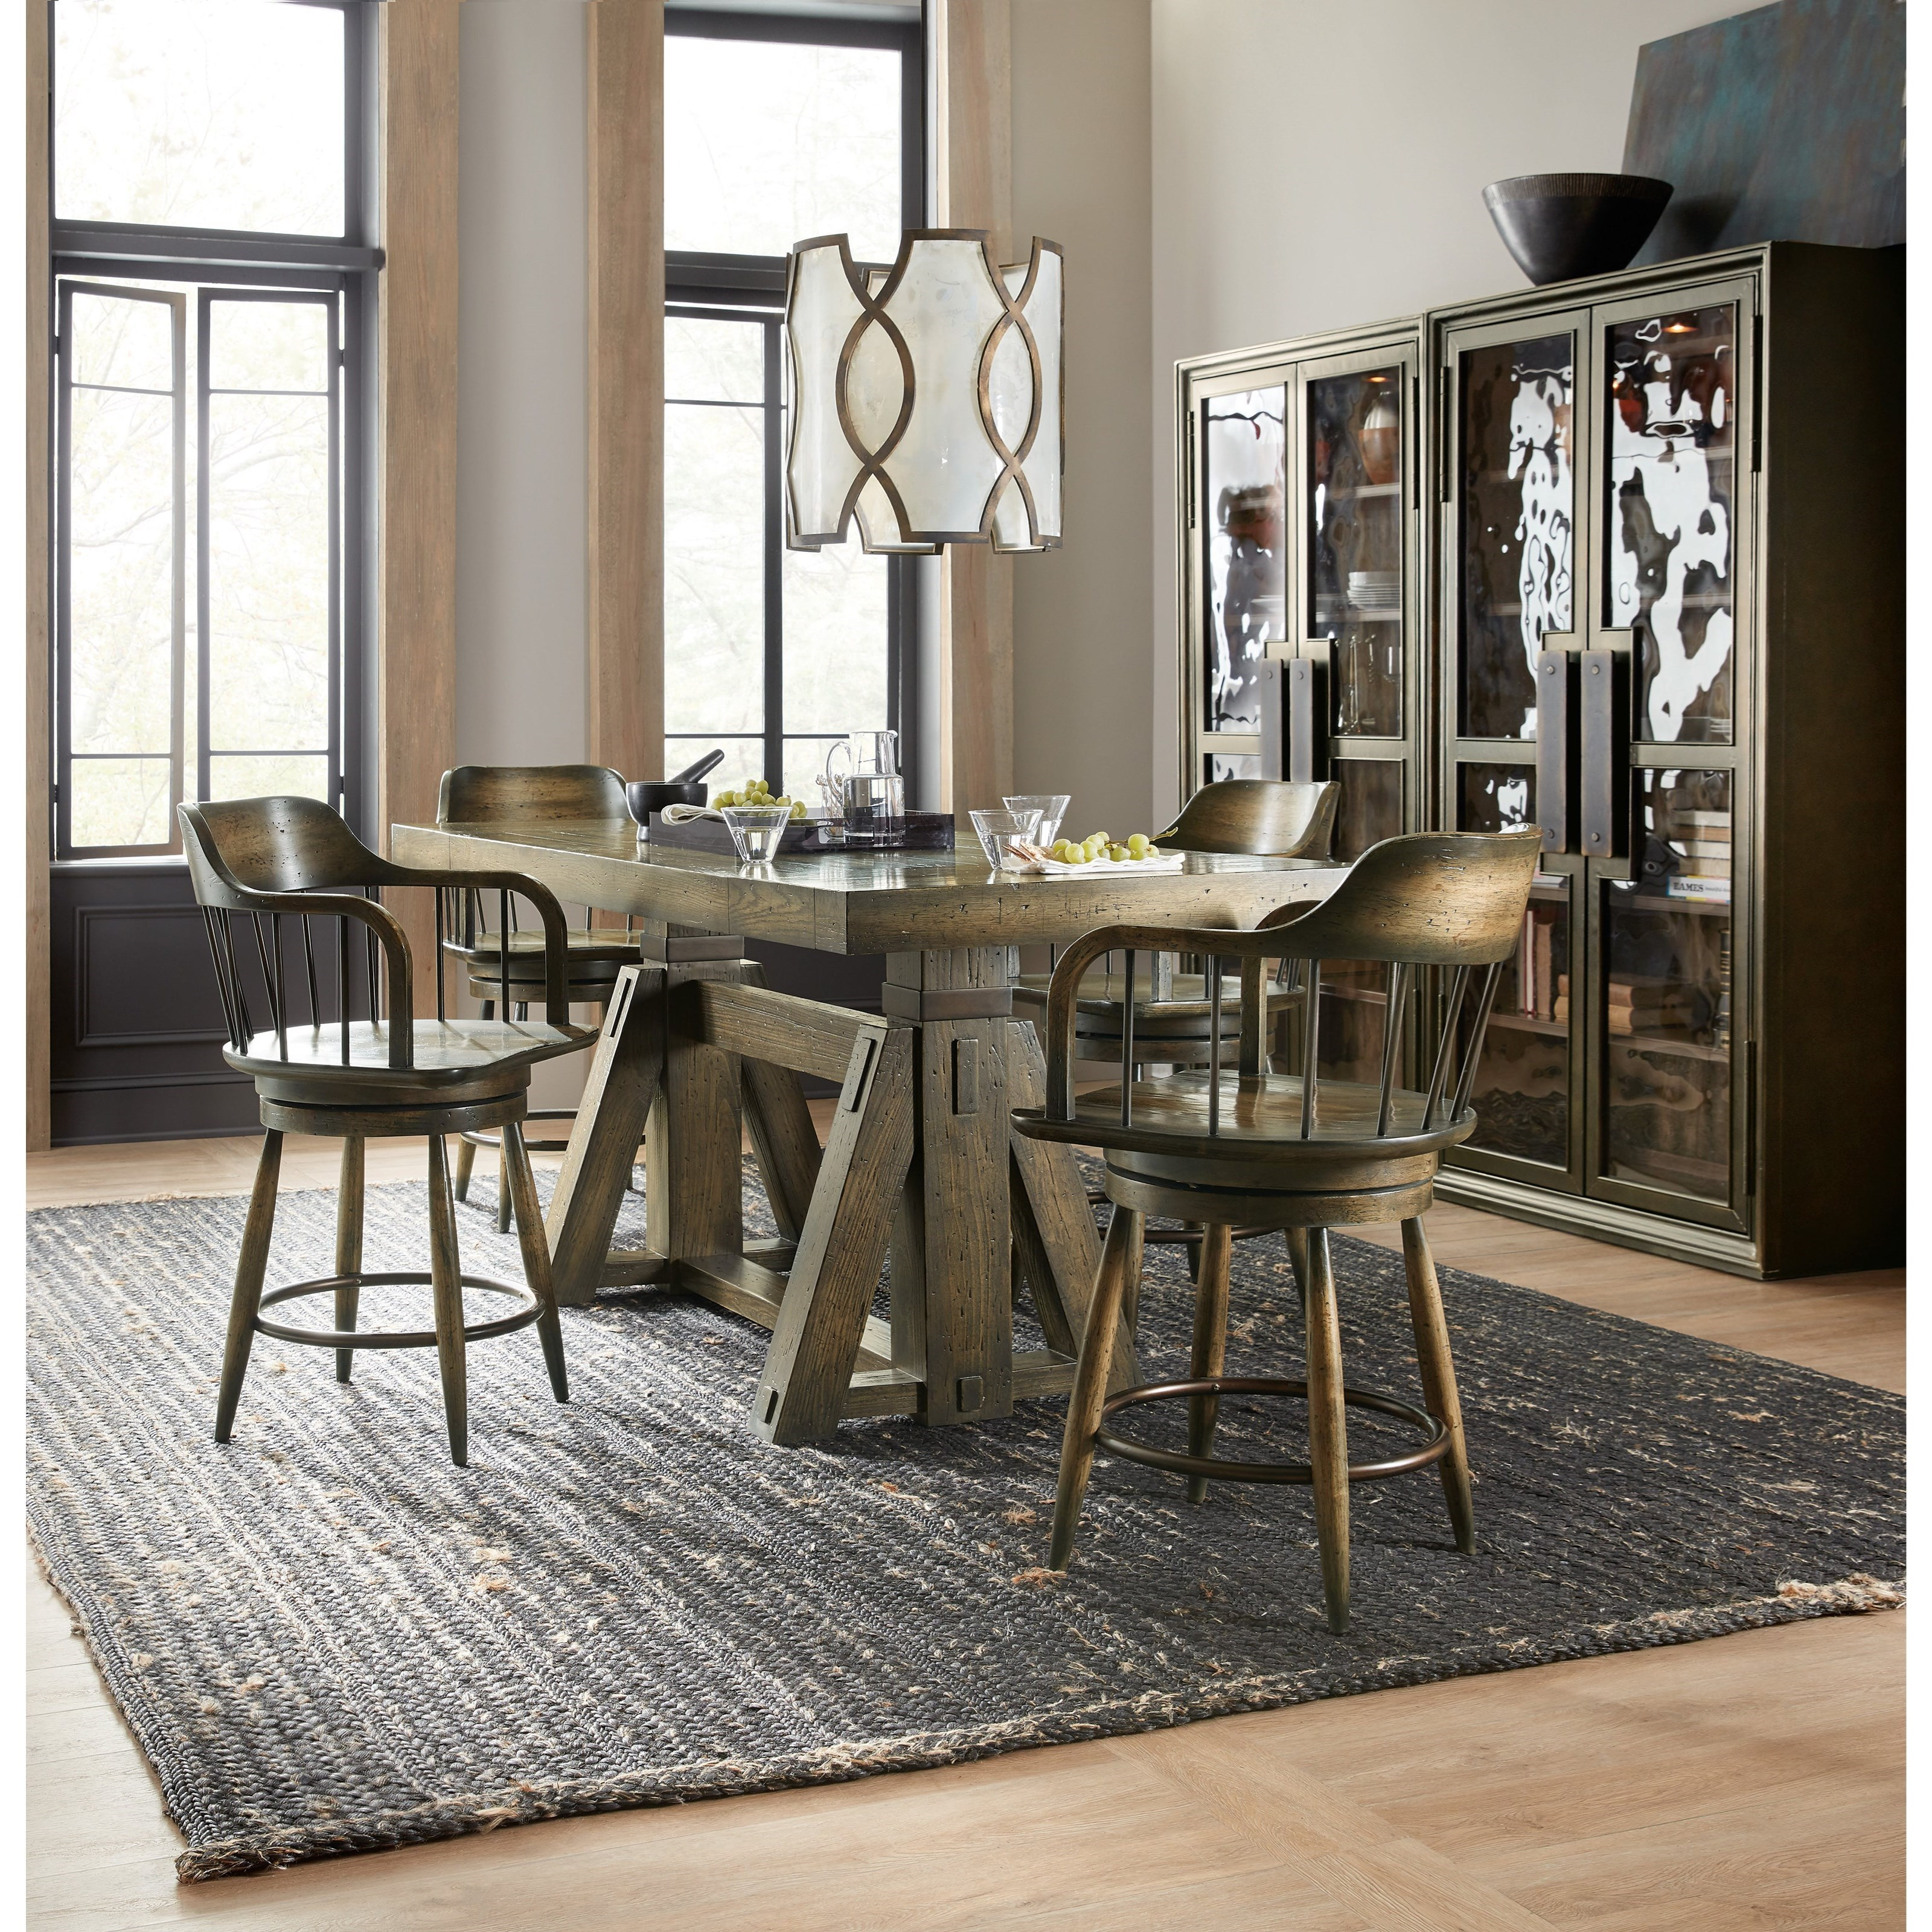 American Life-Crafted 5 Piece Table and Chair Set at Williams & Kay